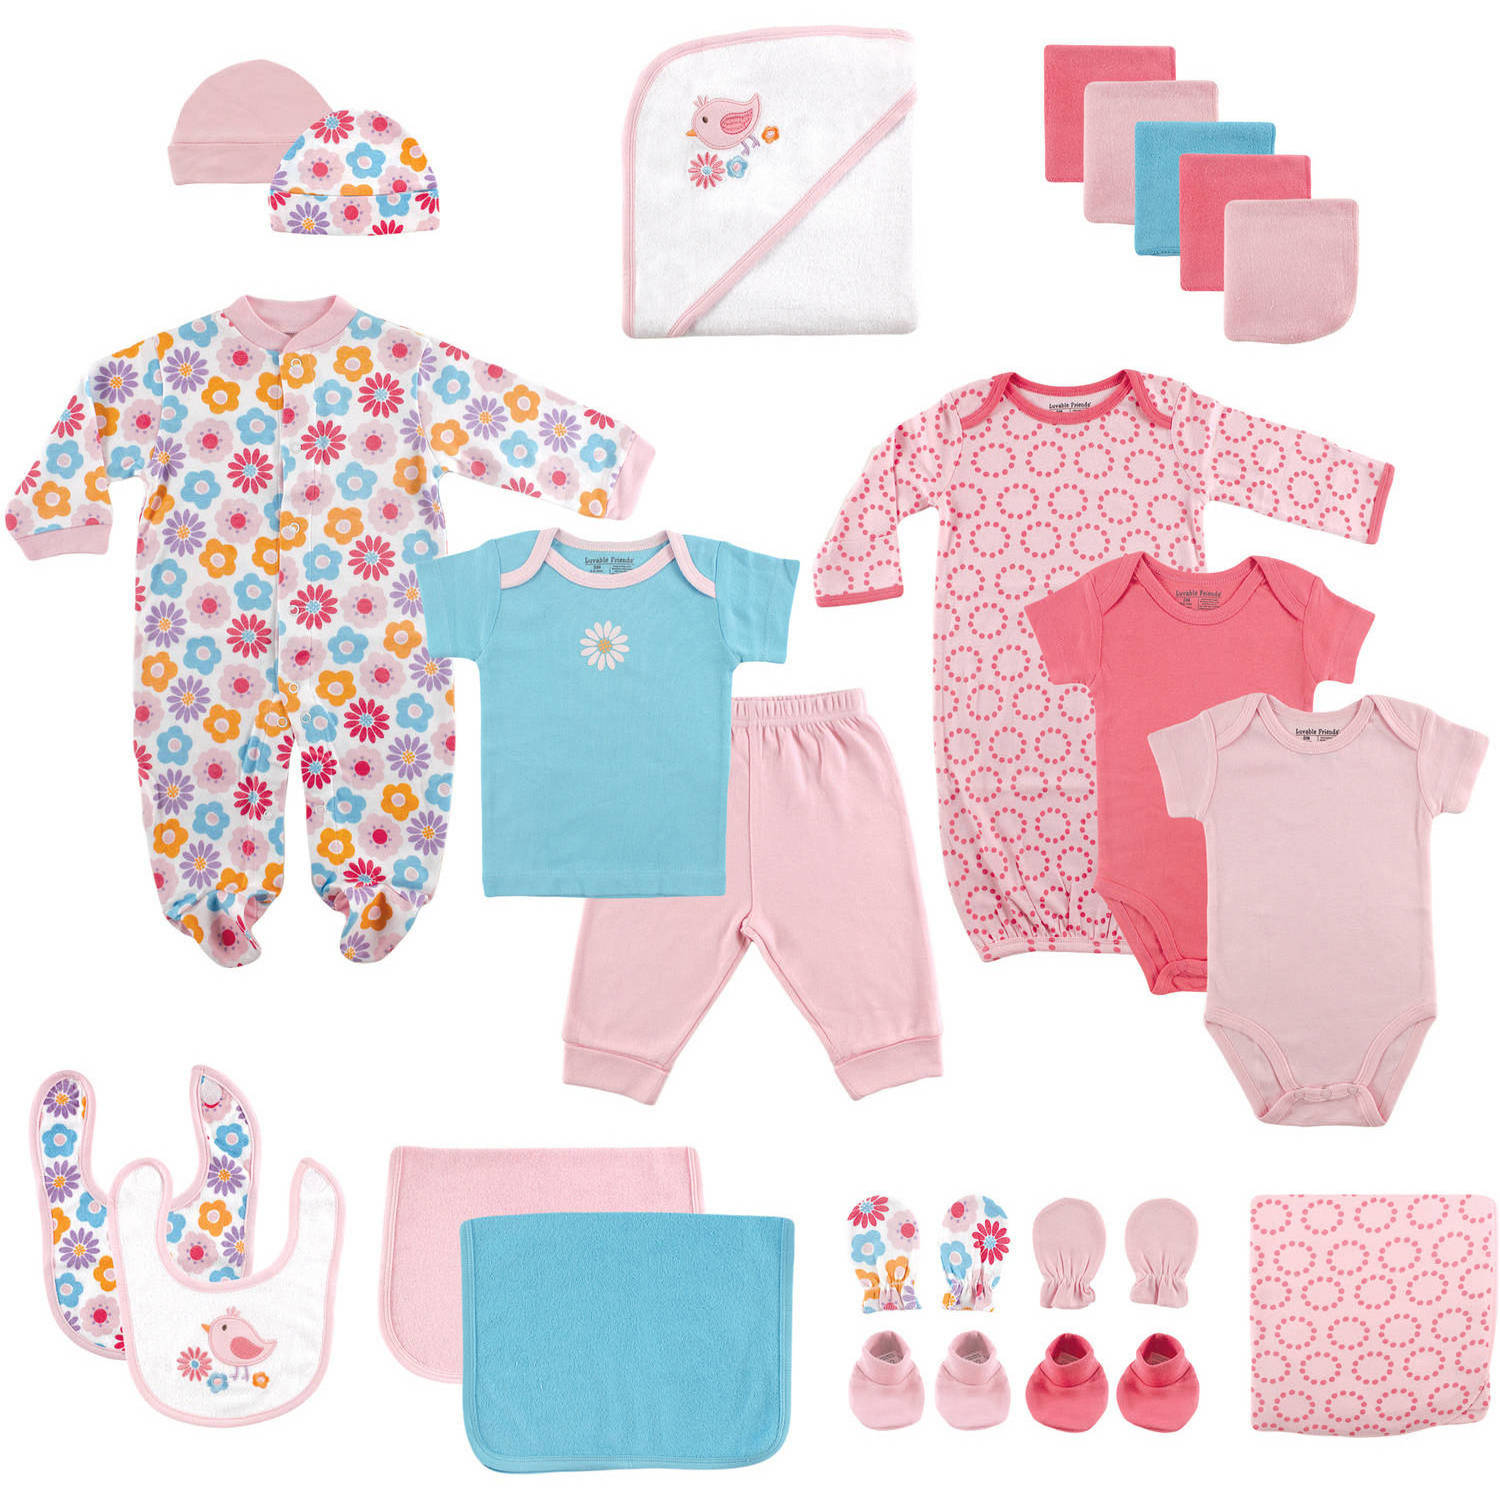 Newborn Baby Girl Deluxe Coordinated Gift Set, 24pc